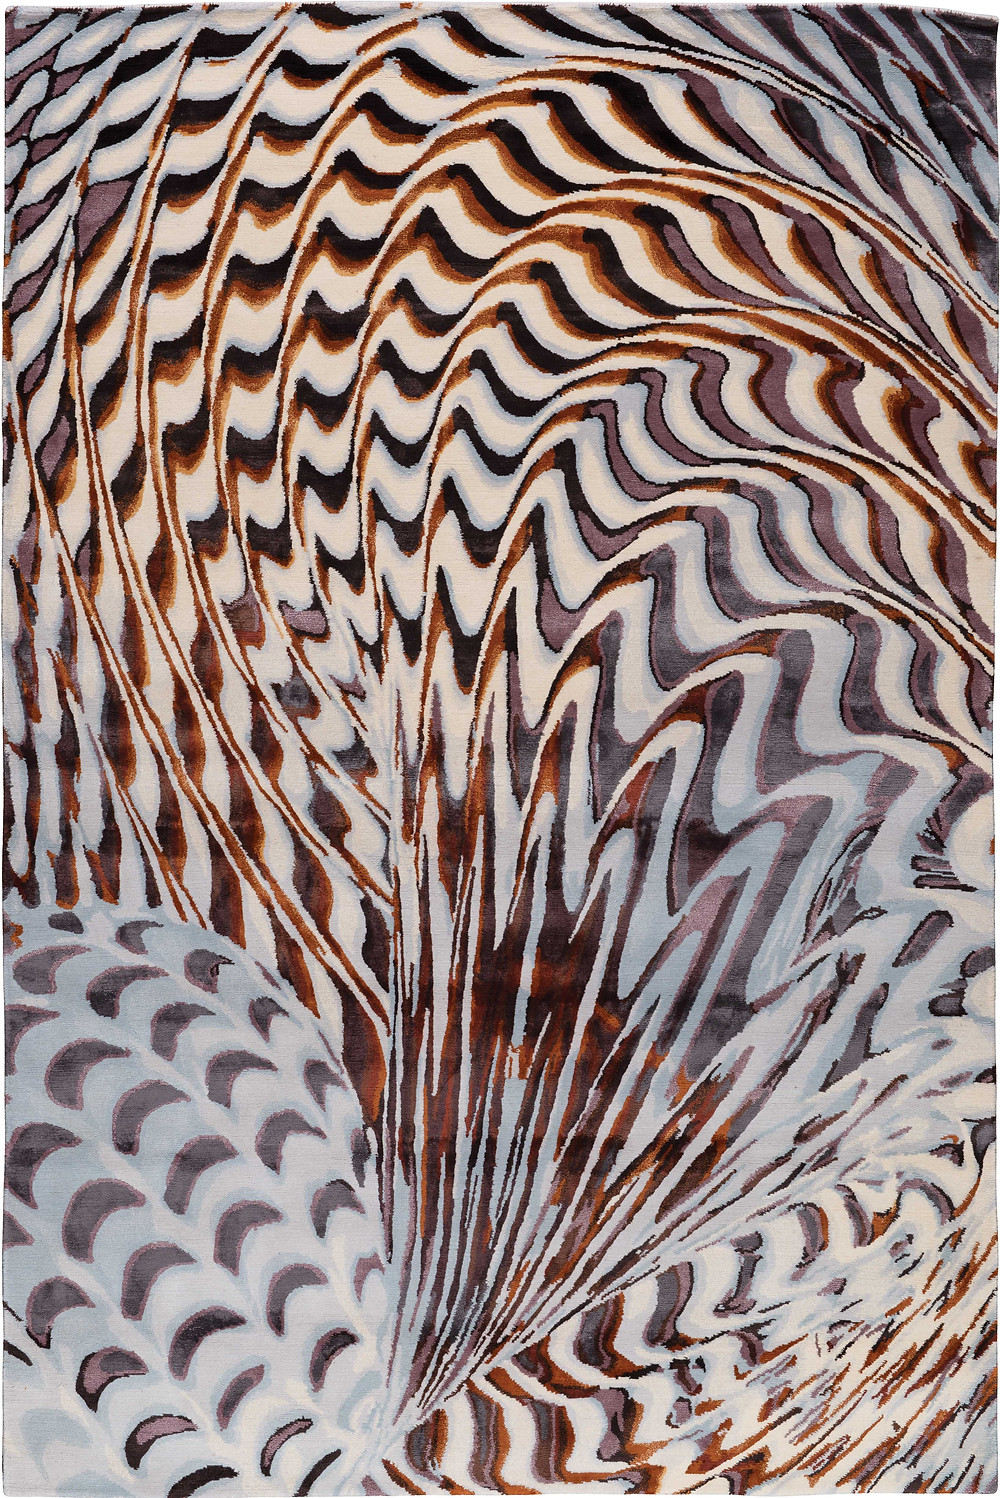 Pheasant takes inspiration from Chihuly's 'Macchia' series in which pieces of colored glass are layered on the surface of the 'Macchia' during the glassblowing process. Pheasant features a shell-like motif that twists and contorts across the composition to bold effect.